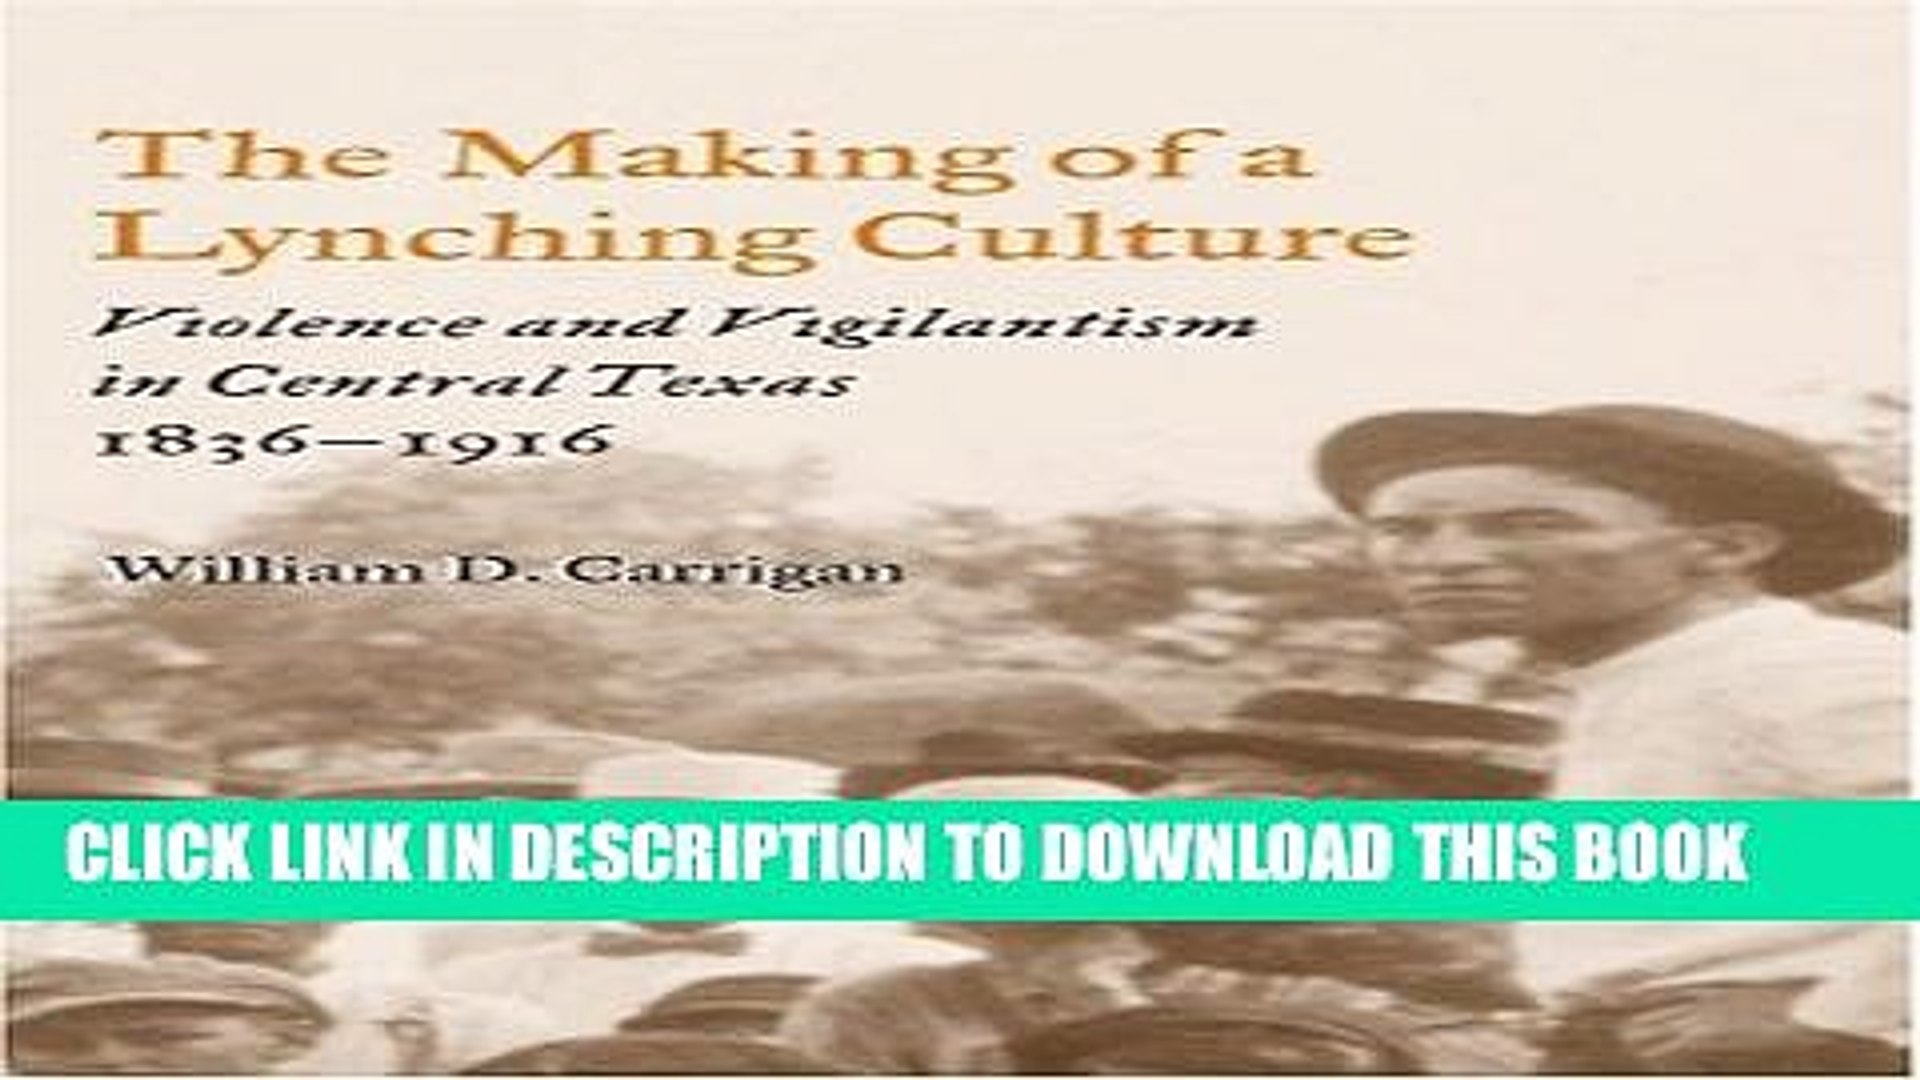 [PDF] The Making of a Lynching Culture: Violence and Vigilantism in Central Texas, 1836-1916